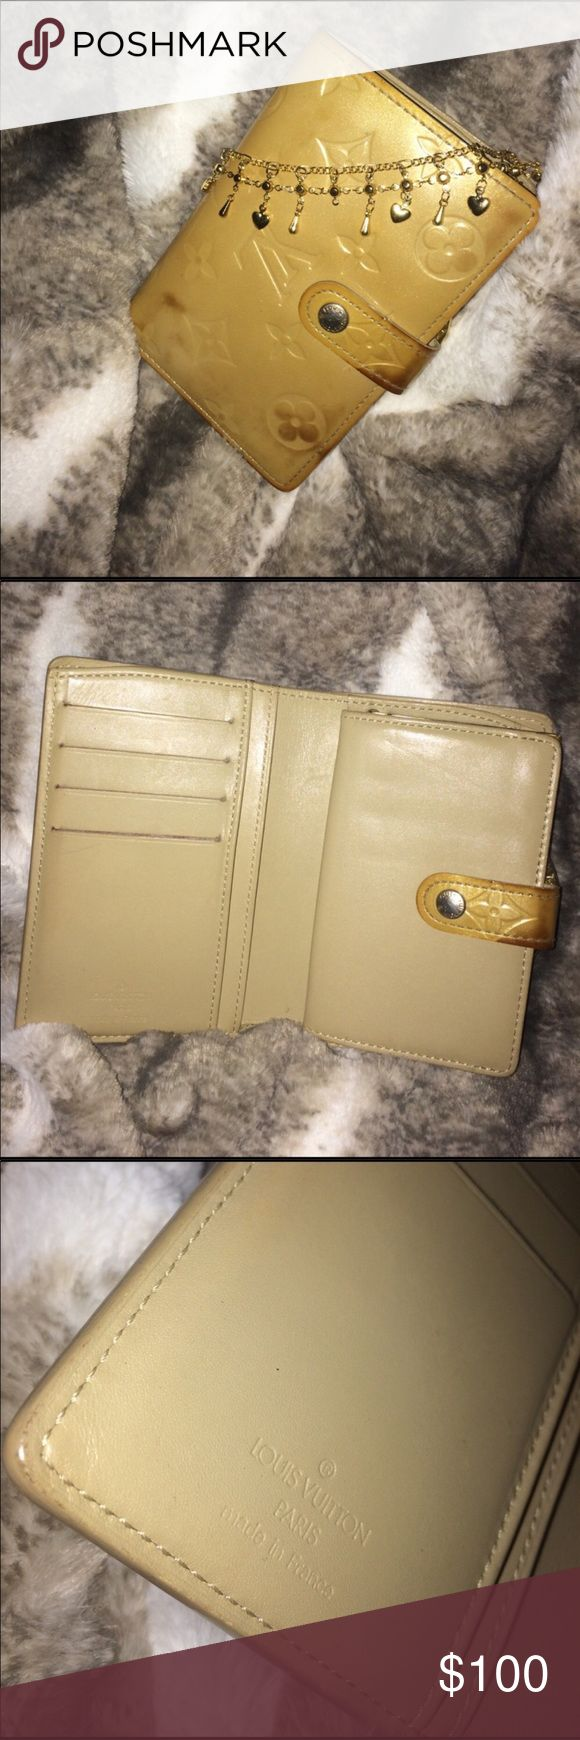 Authentic Louis Vuitton Vernis Kisslock Wallet Re-Posh! This is a goldfish beige patent monogram wallet with 4 card slots, a money insert and a change purse on the back. Carried it once with my bag but the color is off. Date code is there but hard to see on picture. Outside is stained a bit but the inside is impeccable. Taking this as a loss for your gain. Louis Vuitton Bags Wallets